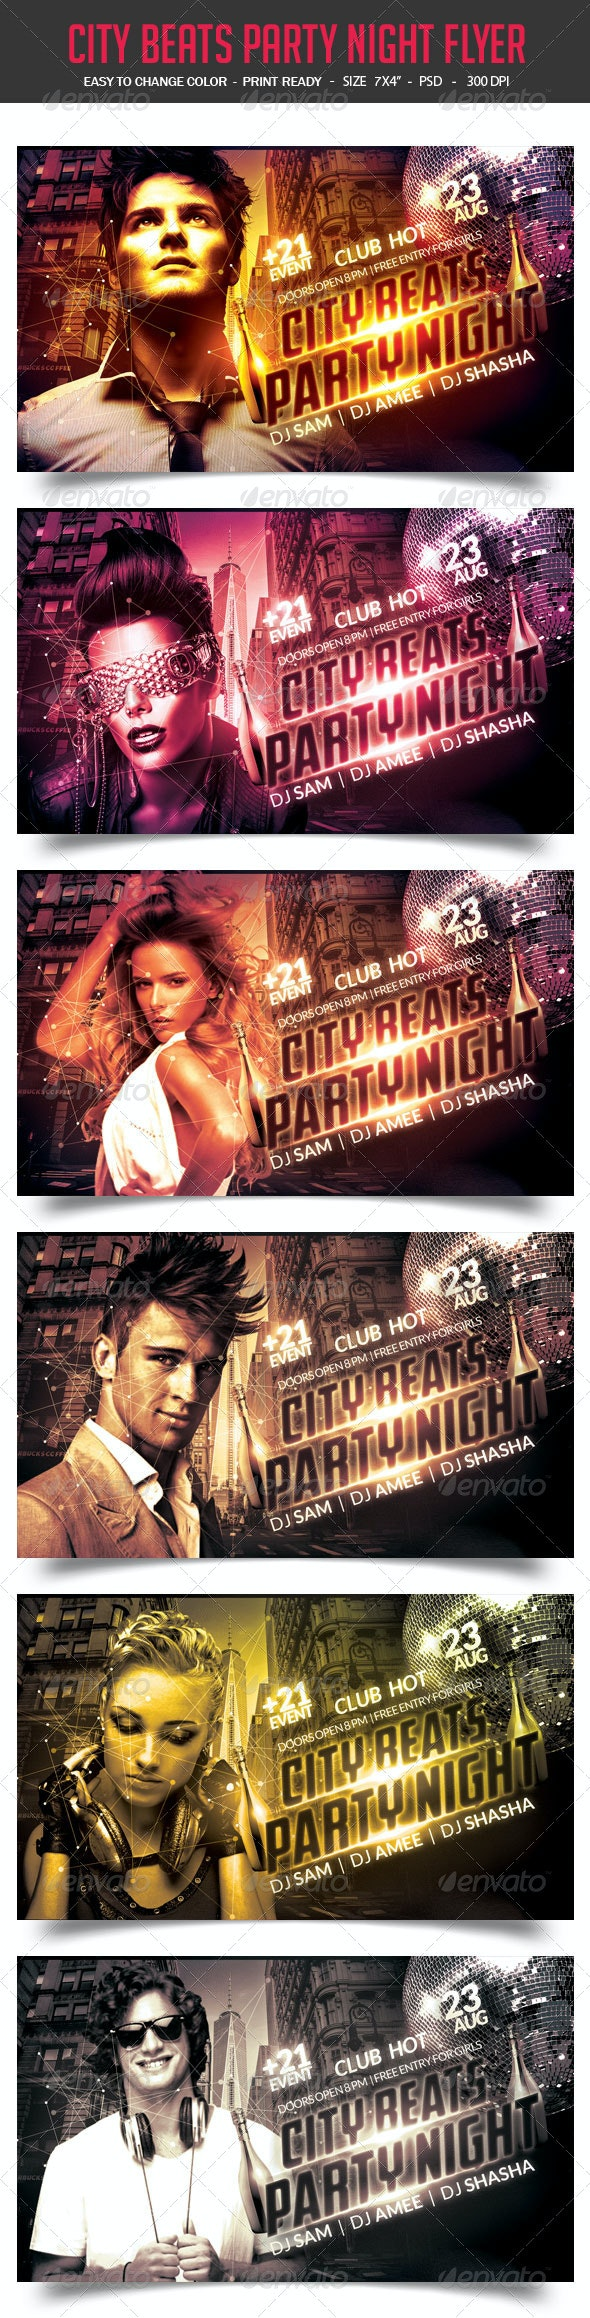 City Beats Party Night Flyer - Clubs & Parties Events